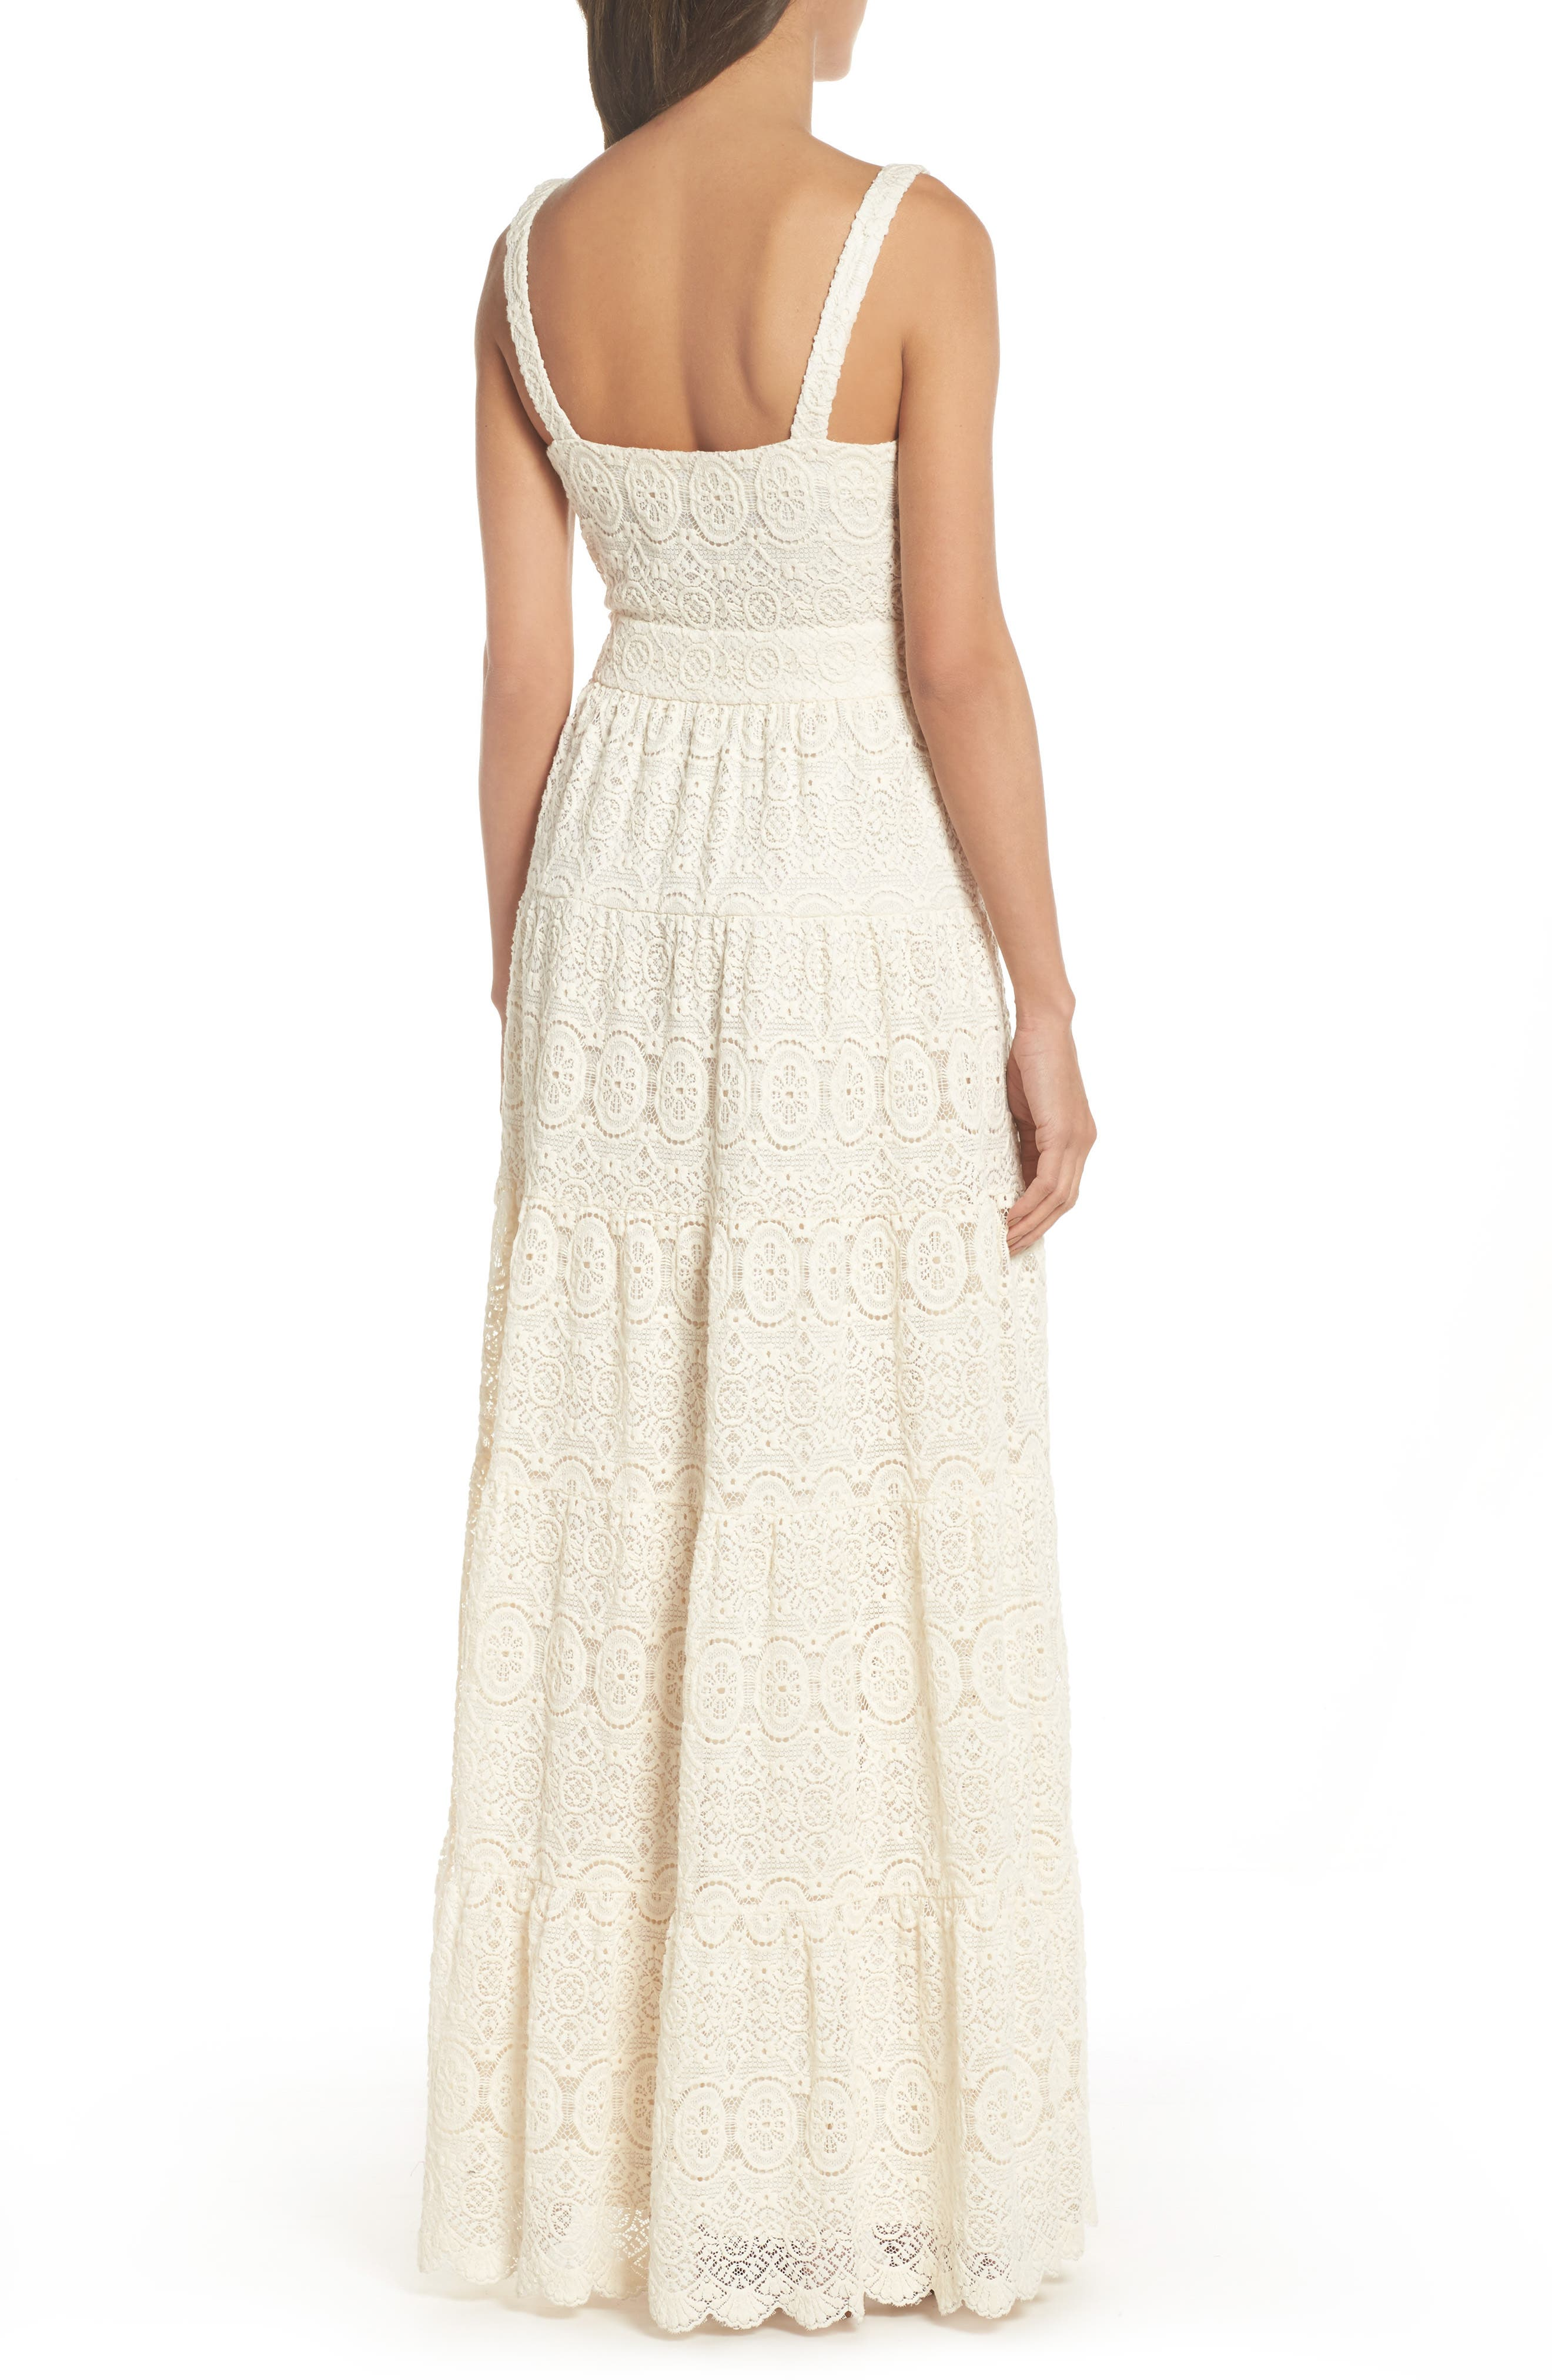 Tiered Lace Maxi Dress,                             Alternate thumbnail 2, color,                             Ivory